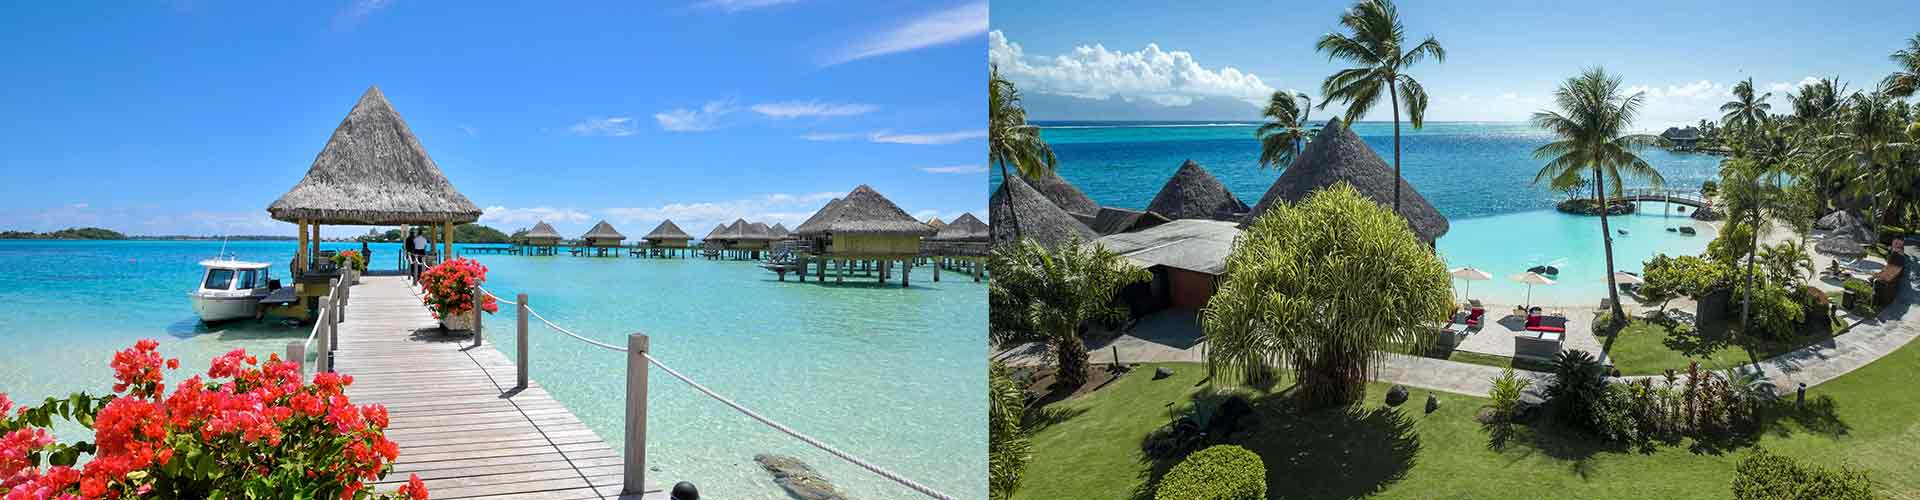 intercontinental-le-moana-resort-bora-bora-air-tahiti